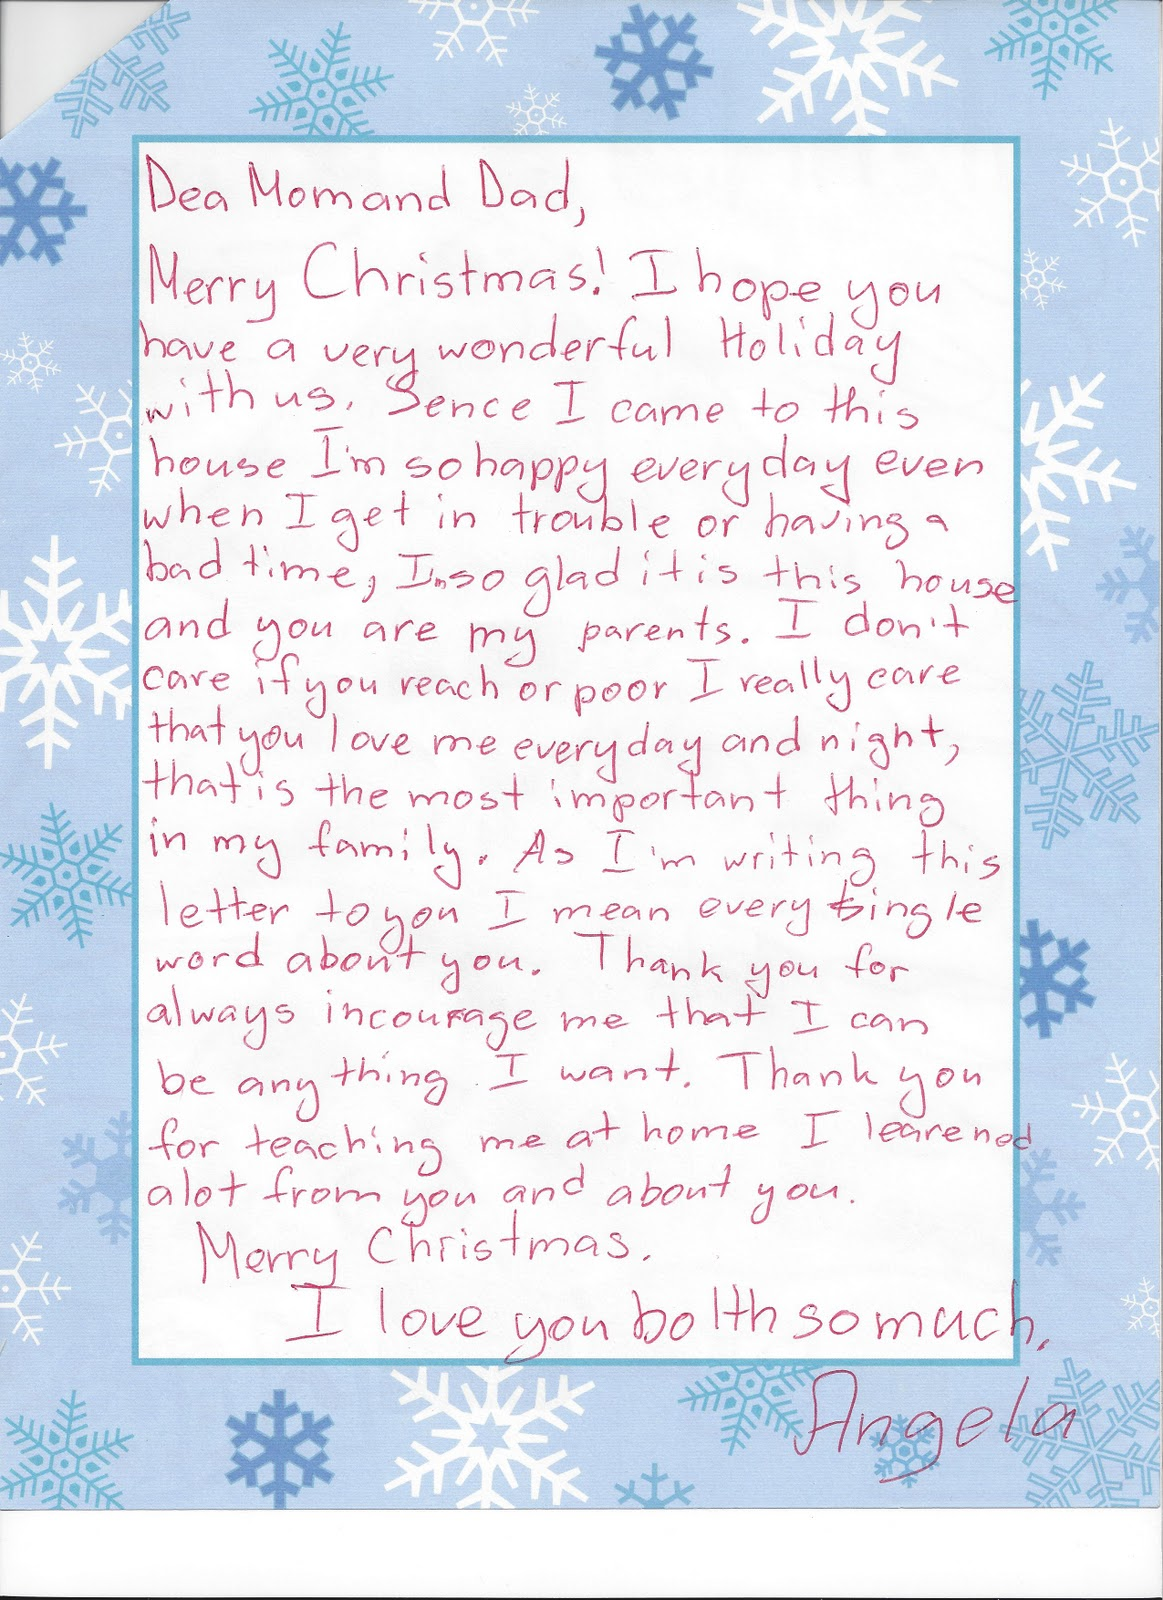 27 CHRISTMAS LETTER FOR YOUR MOM, LETTER MOM FOR YOUR CHRISTMAS